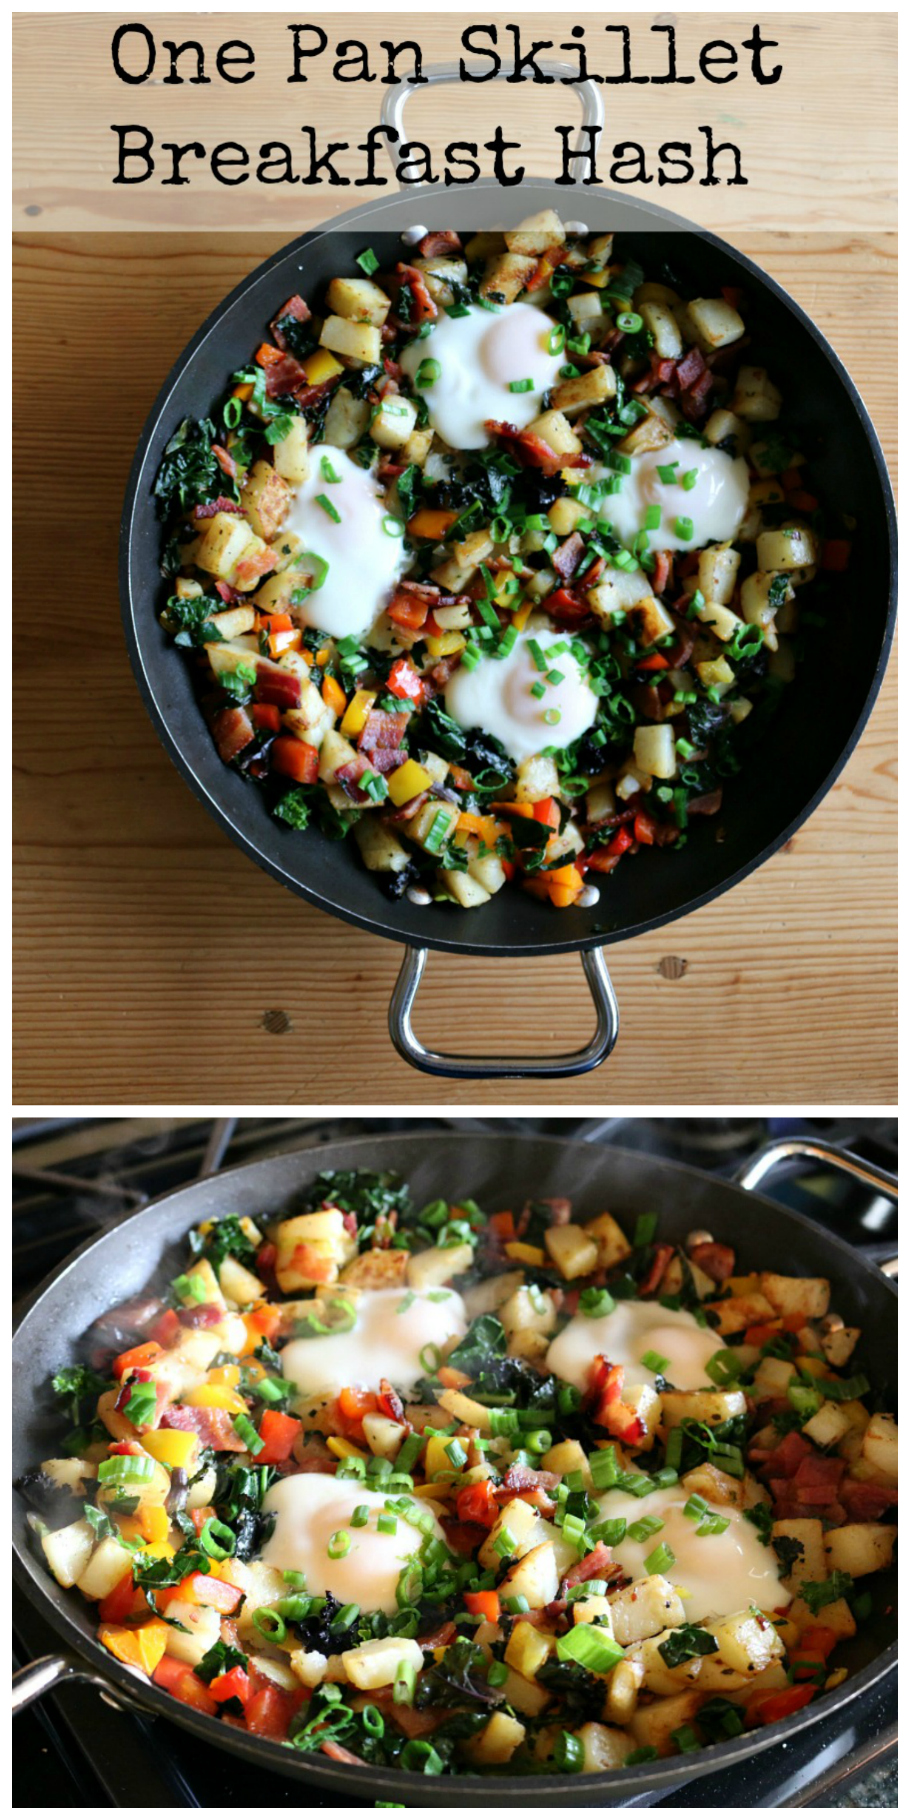 One Pan Breakfast Skillet Hash - a healthy and delicious breakfast recipe from CeceliasGoodStuff.com   Good Food for Good People